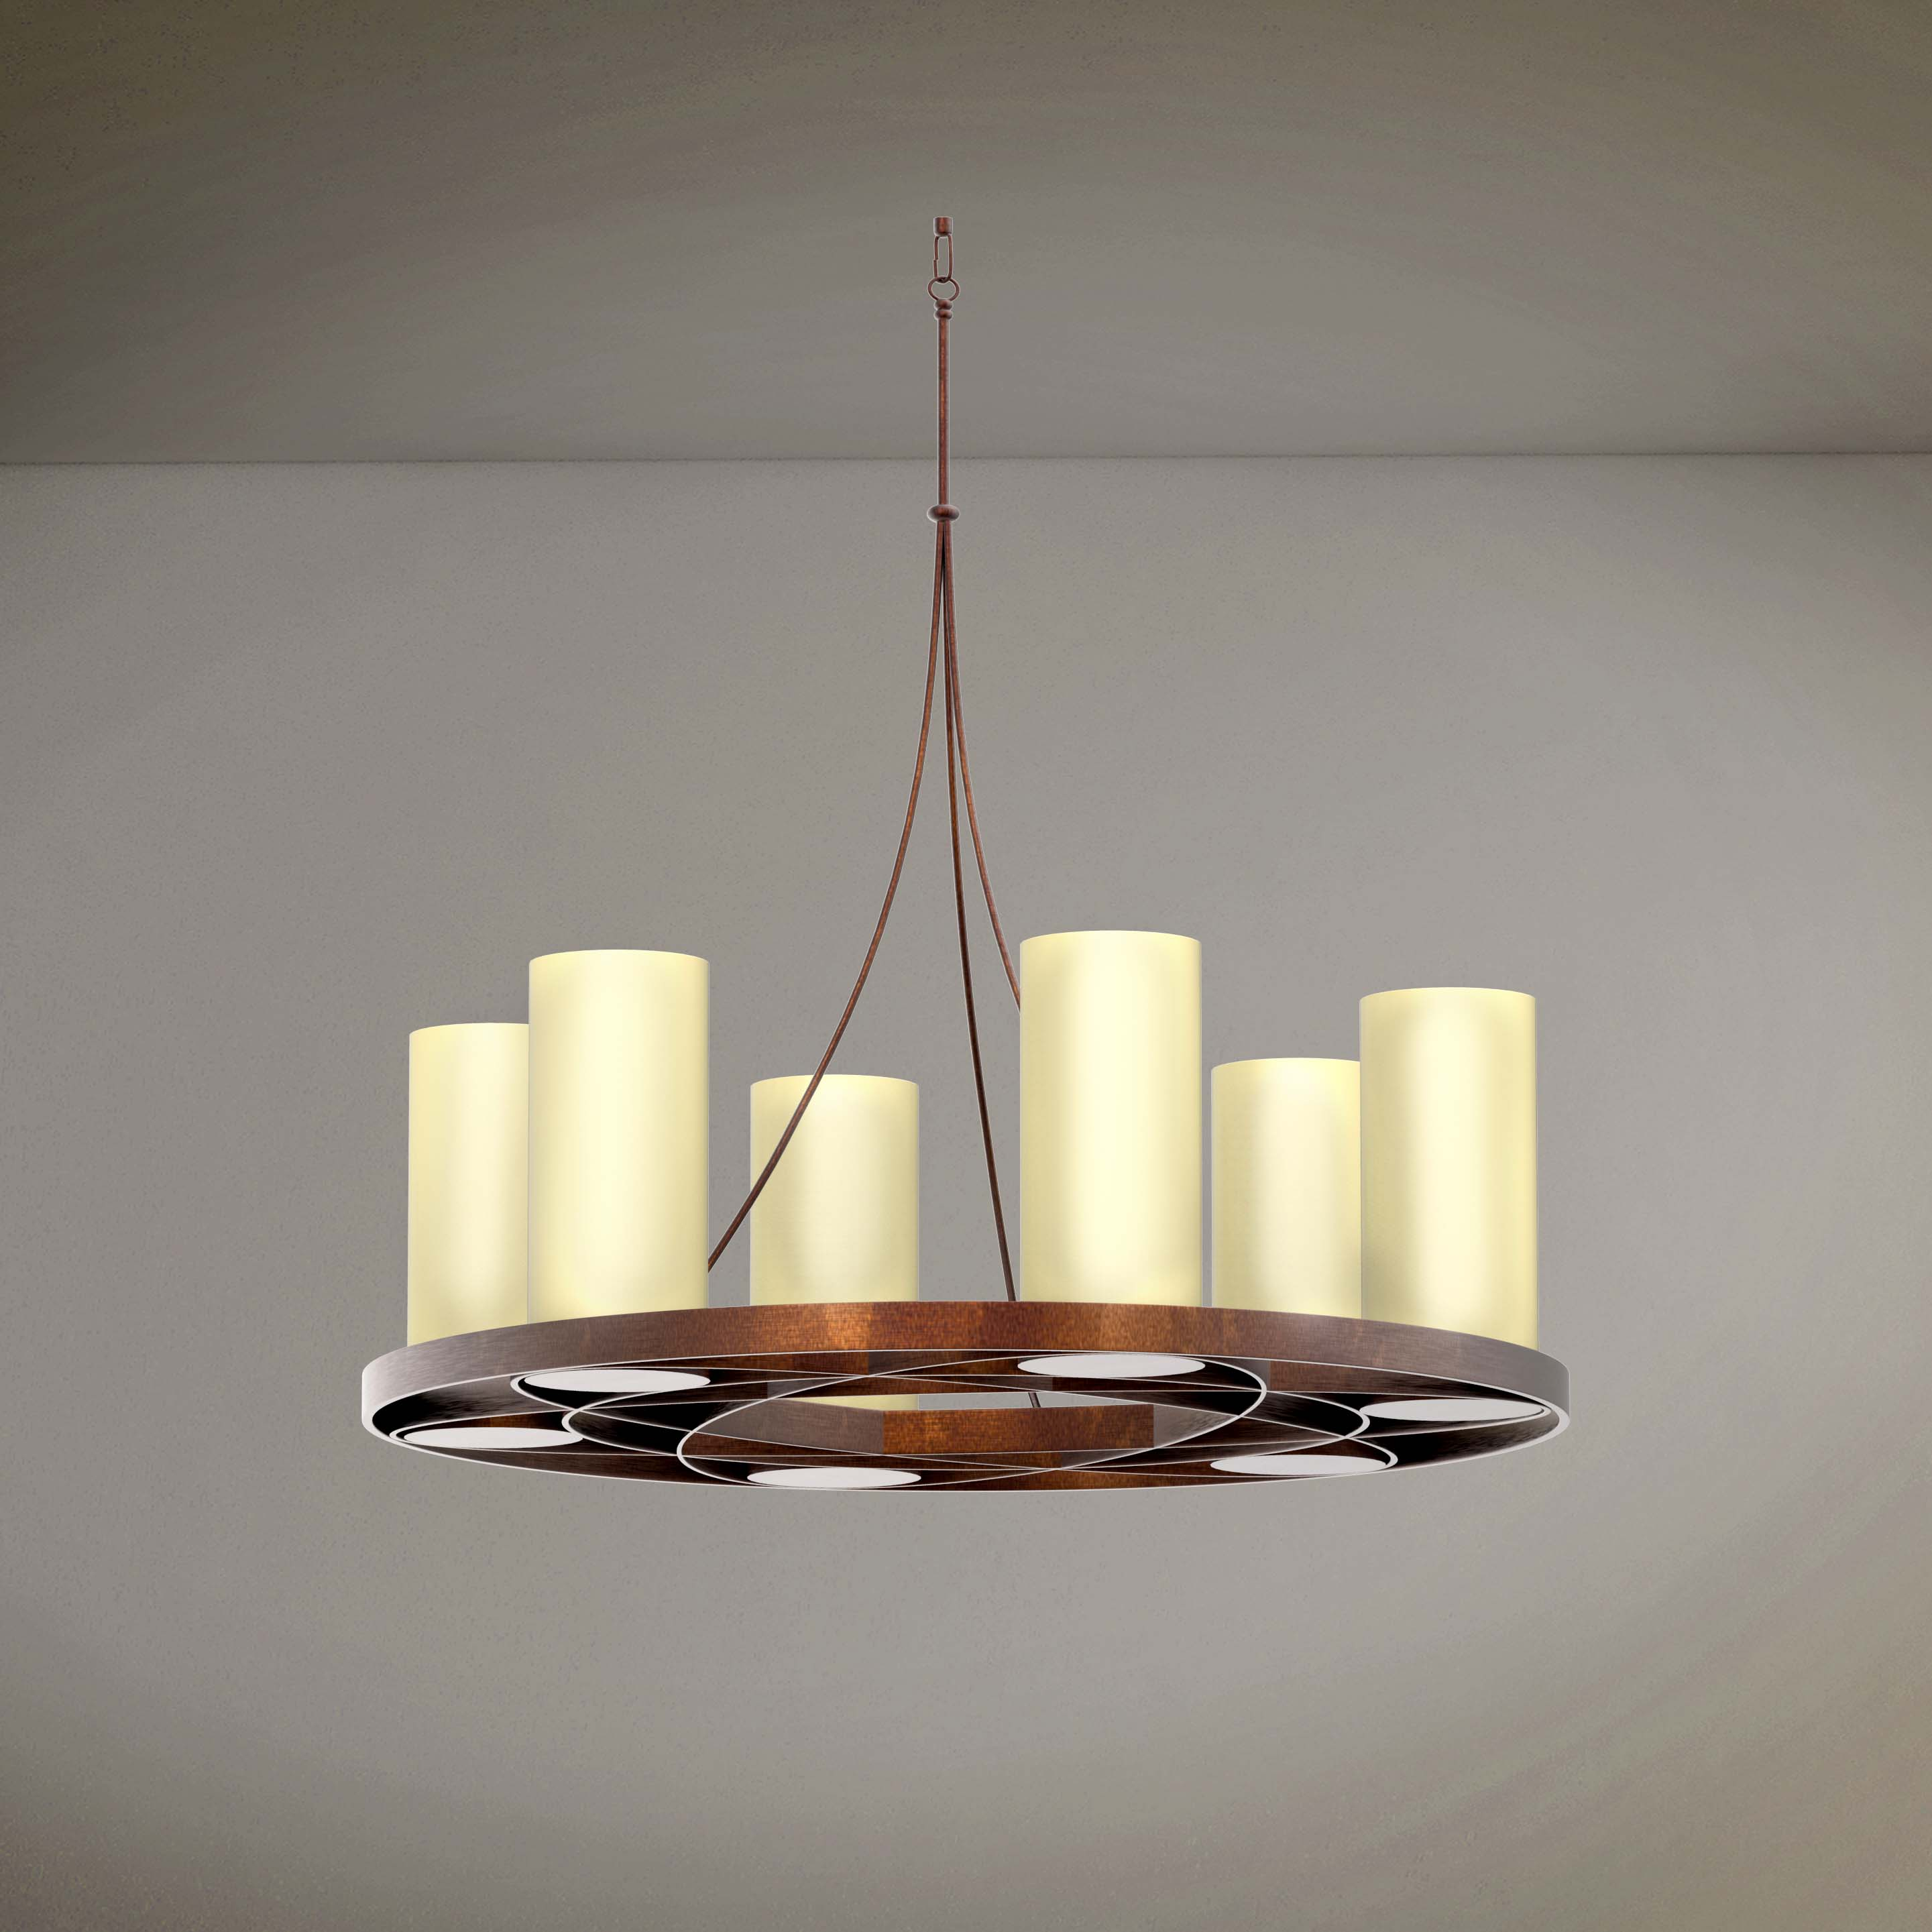 Vintage Candles Style Hanging Chandelier - 3D Product